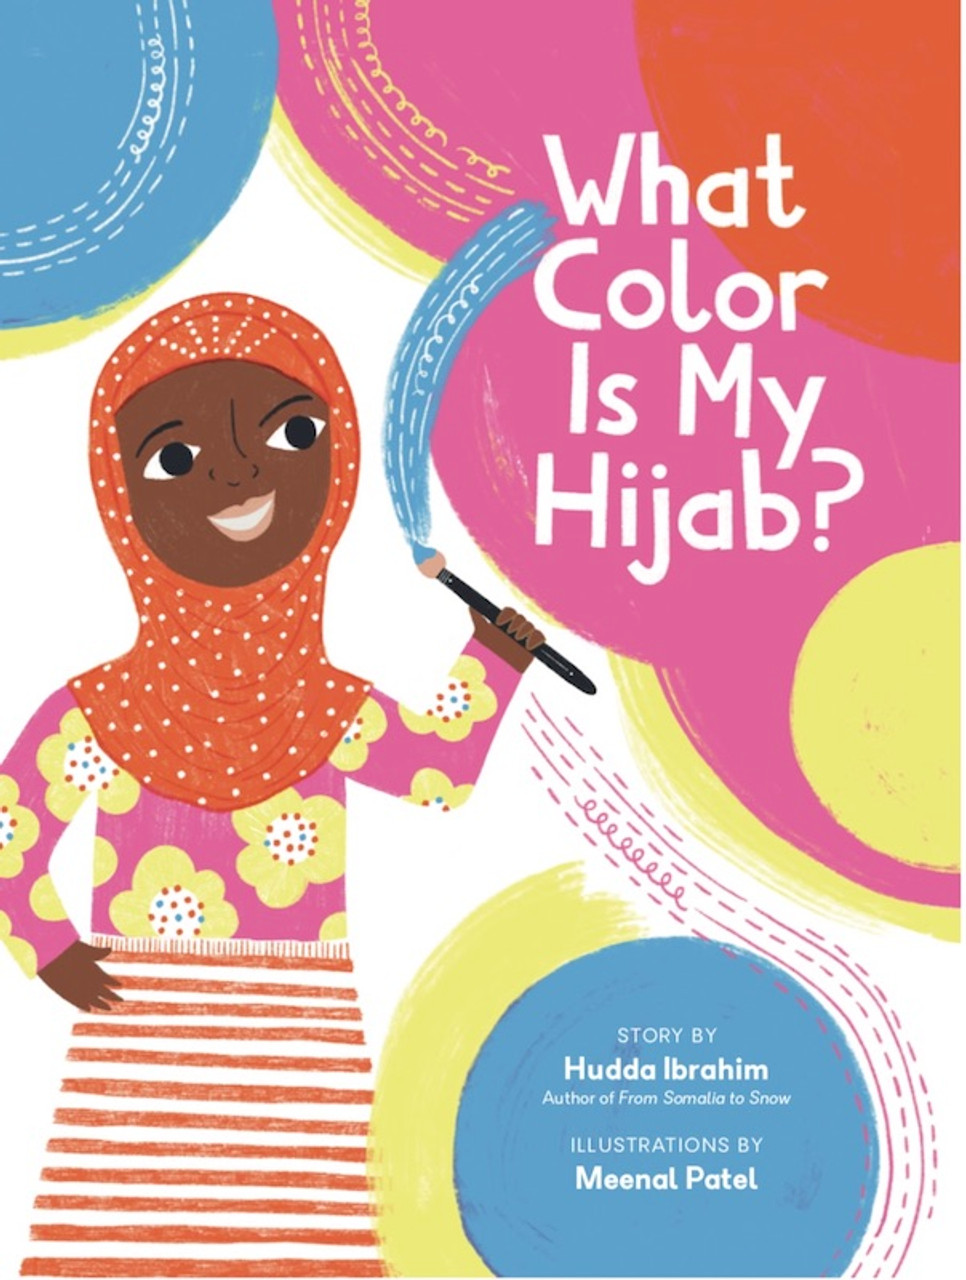 What Color Is My Hijab?